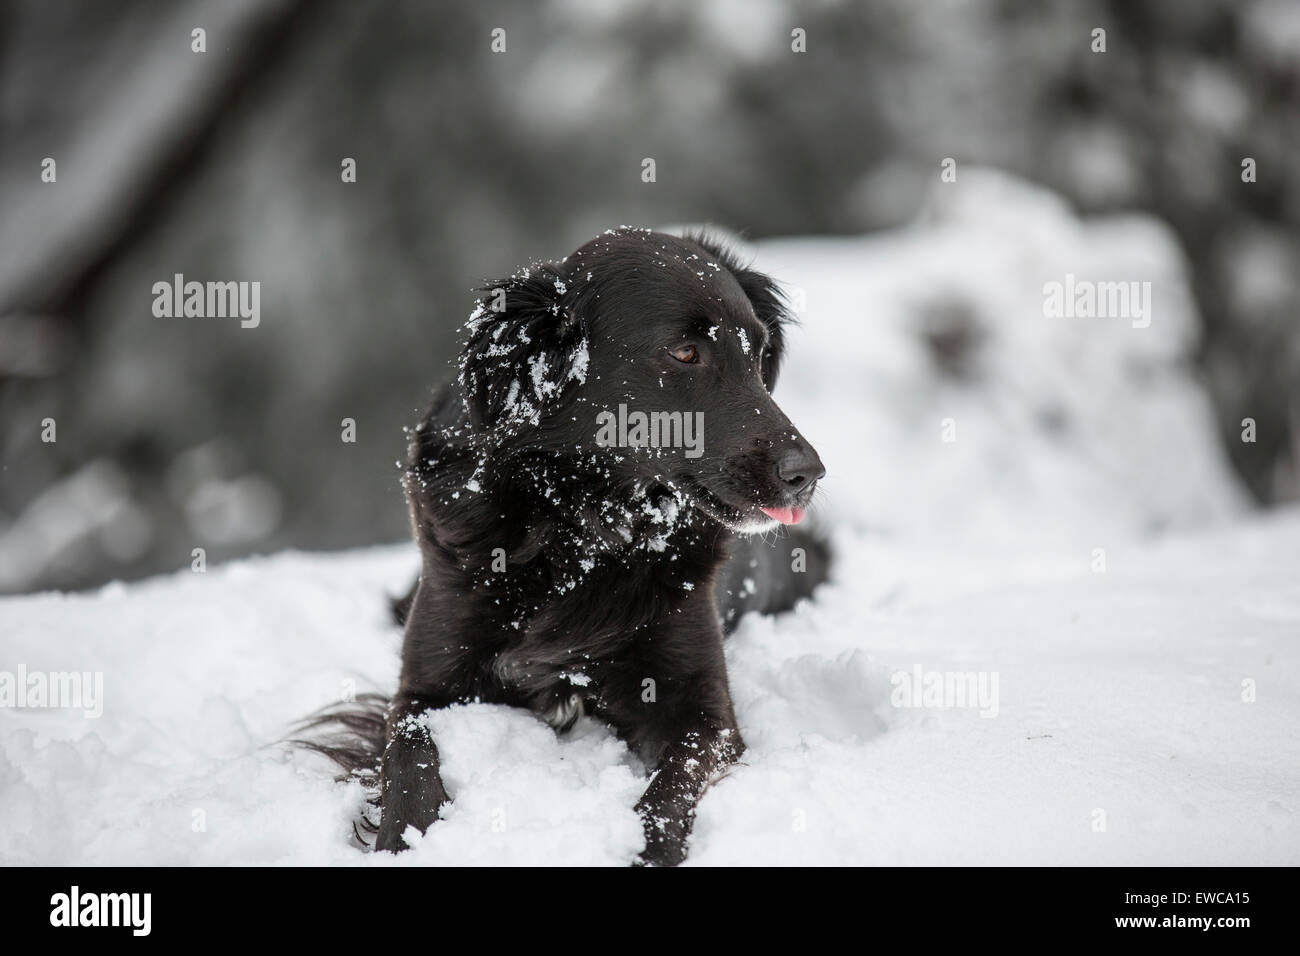 A black dog in the snow. - Stock Image